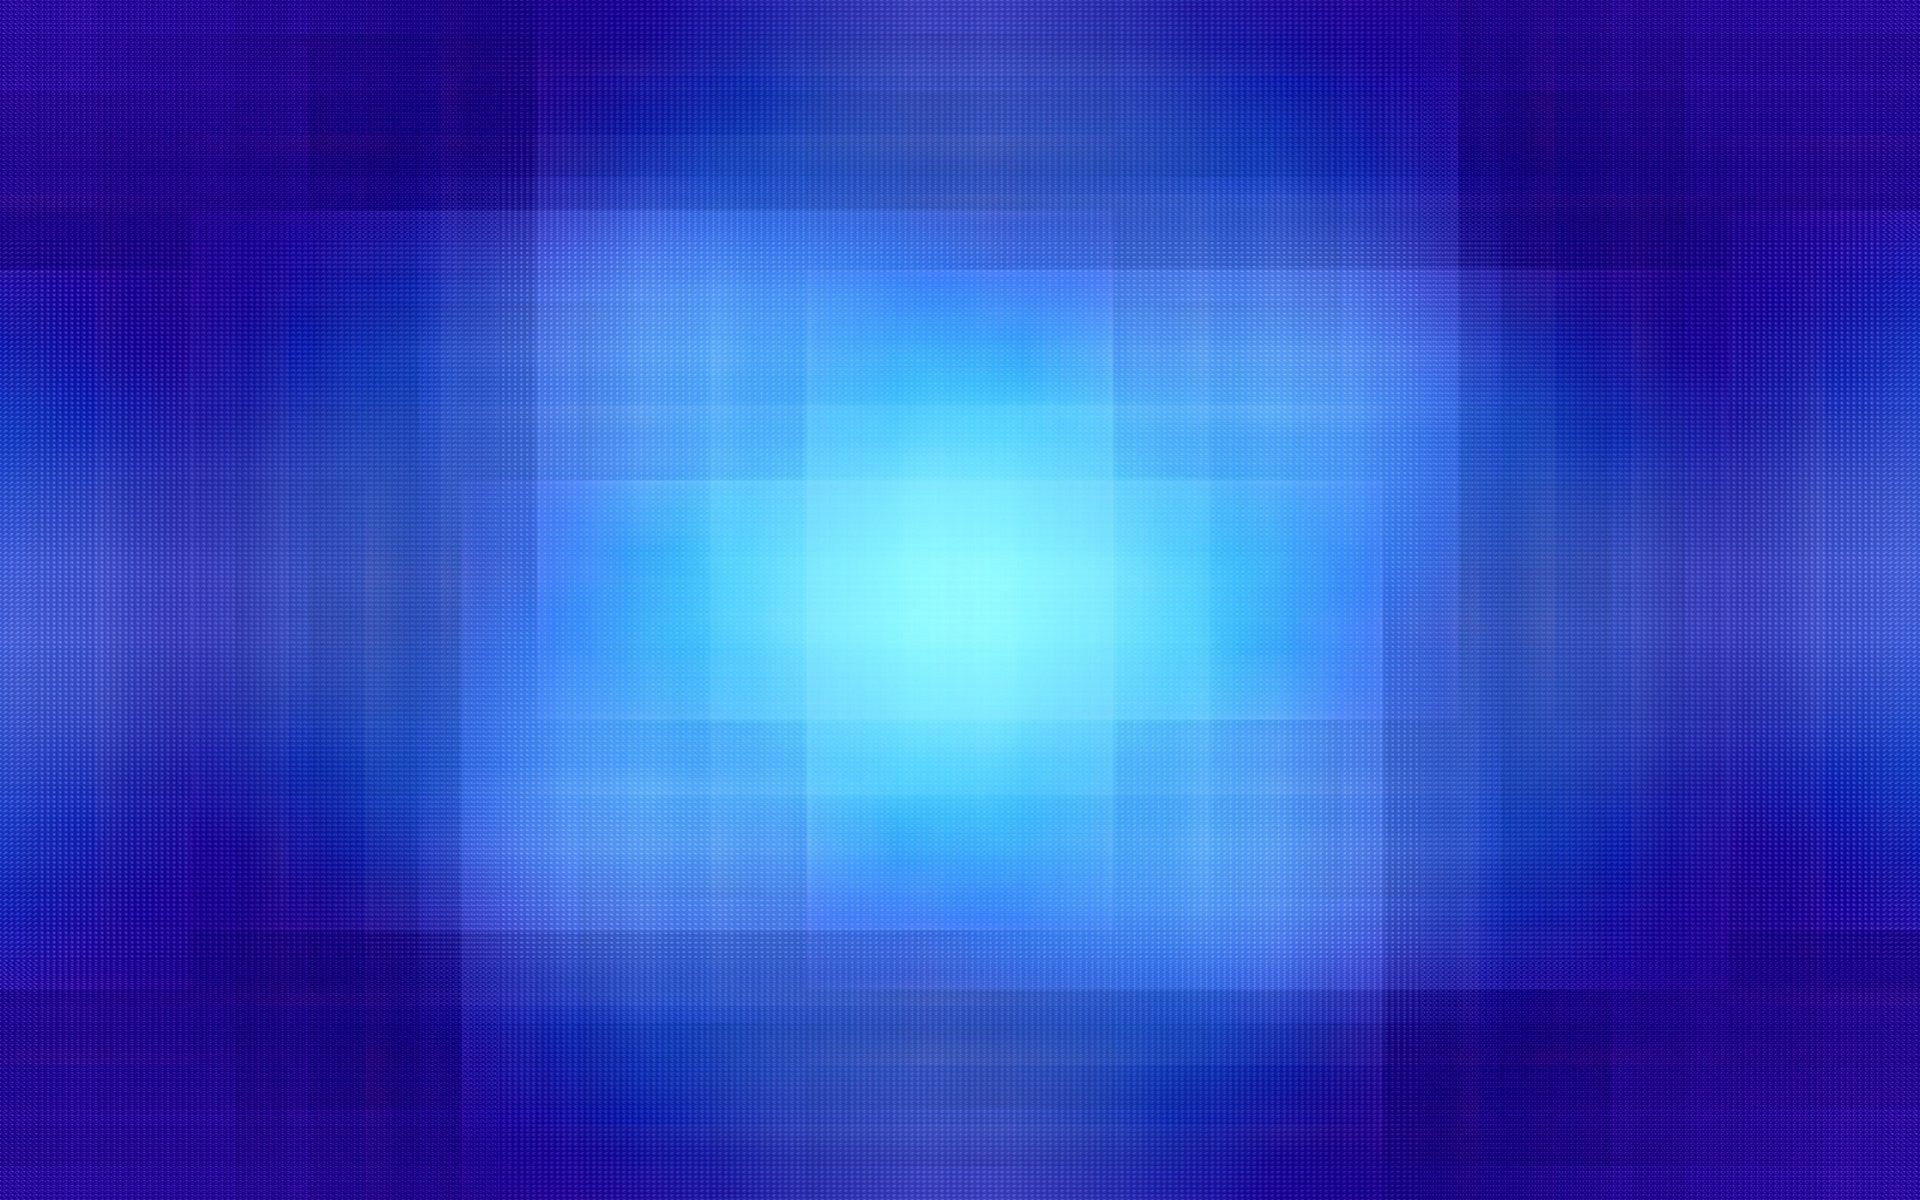 Image Blue Digital Art Wallpapers And Stock Photos